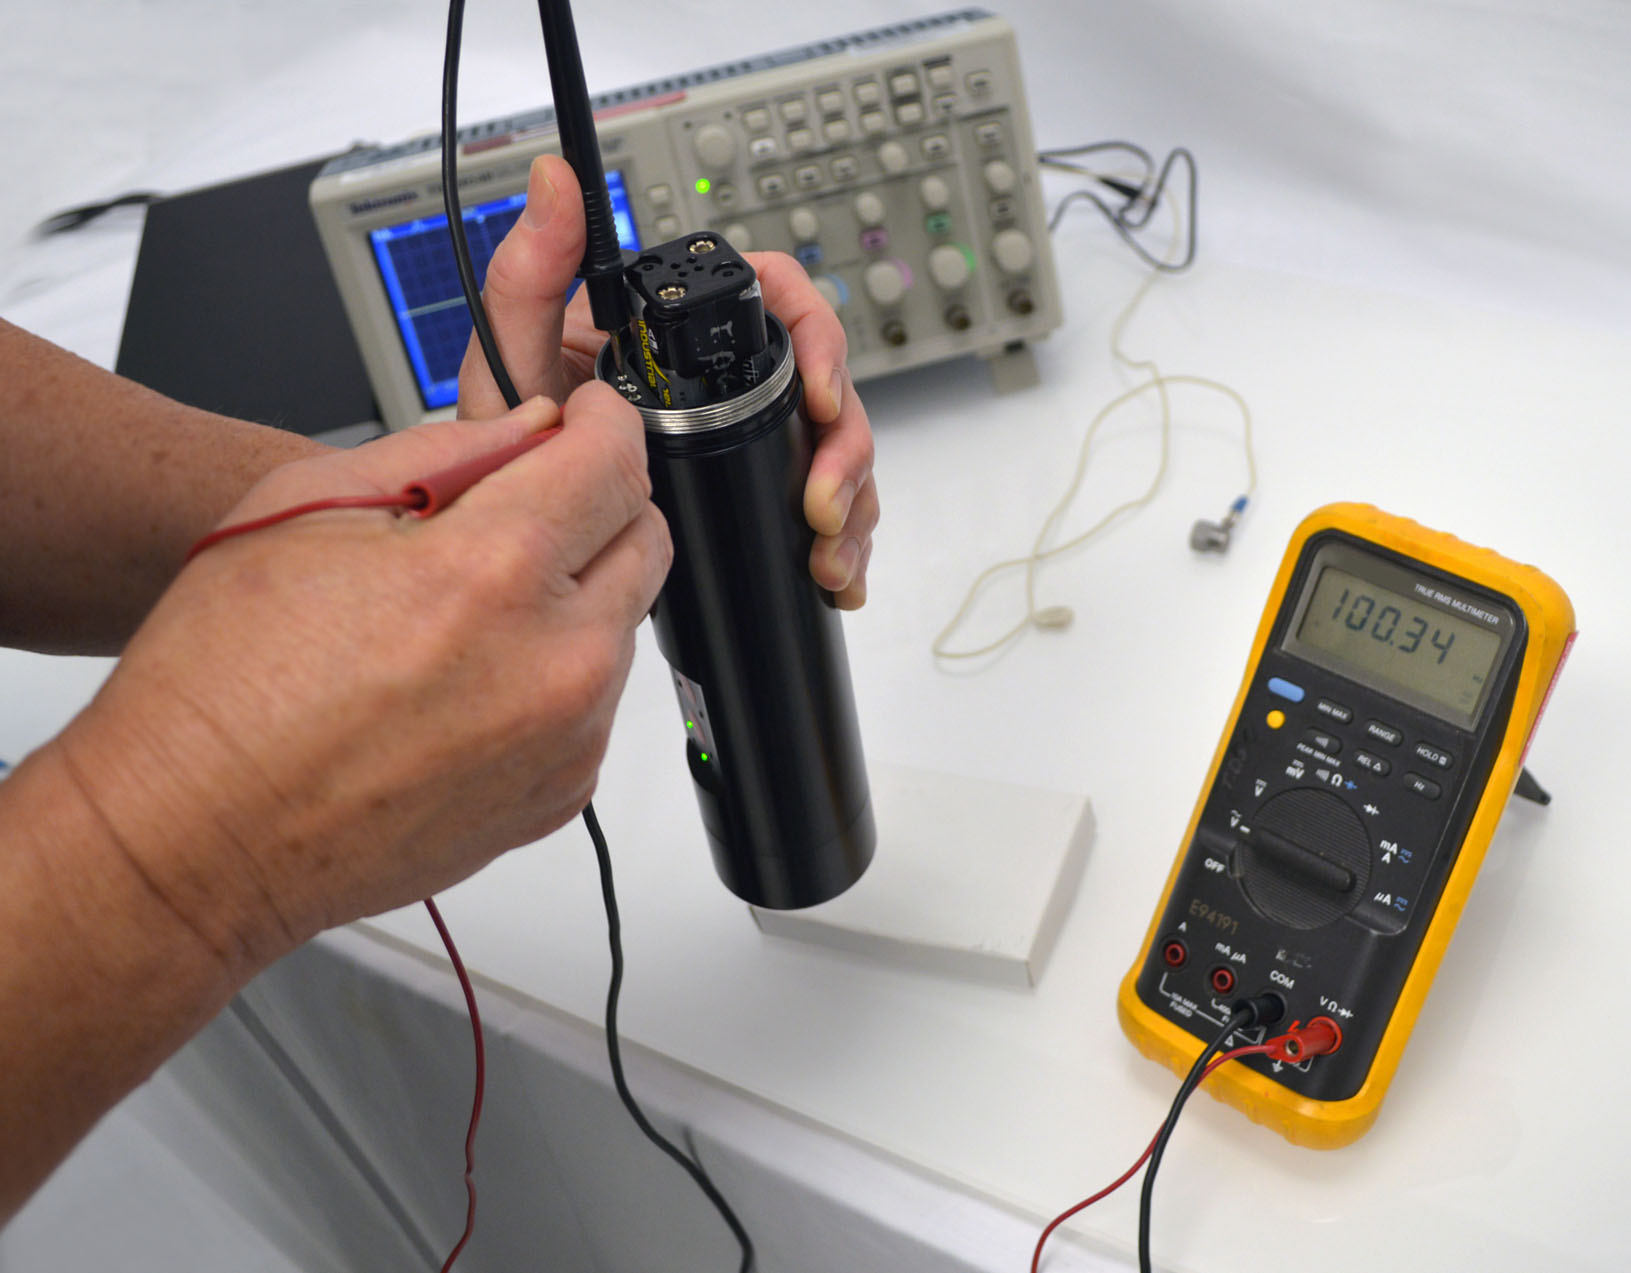 Attaching calibration test probes